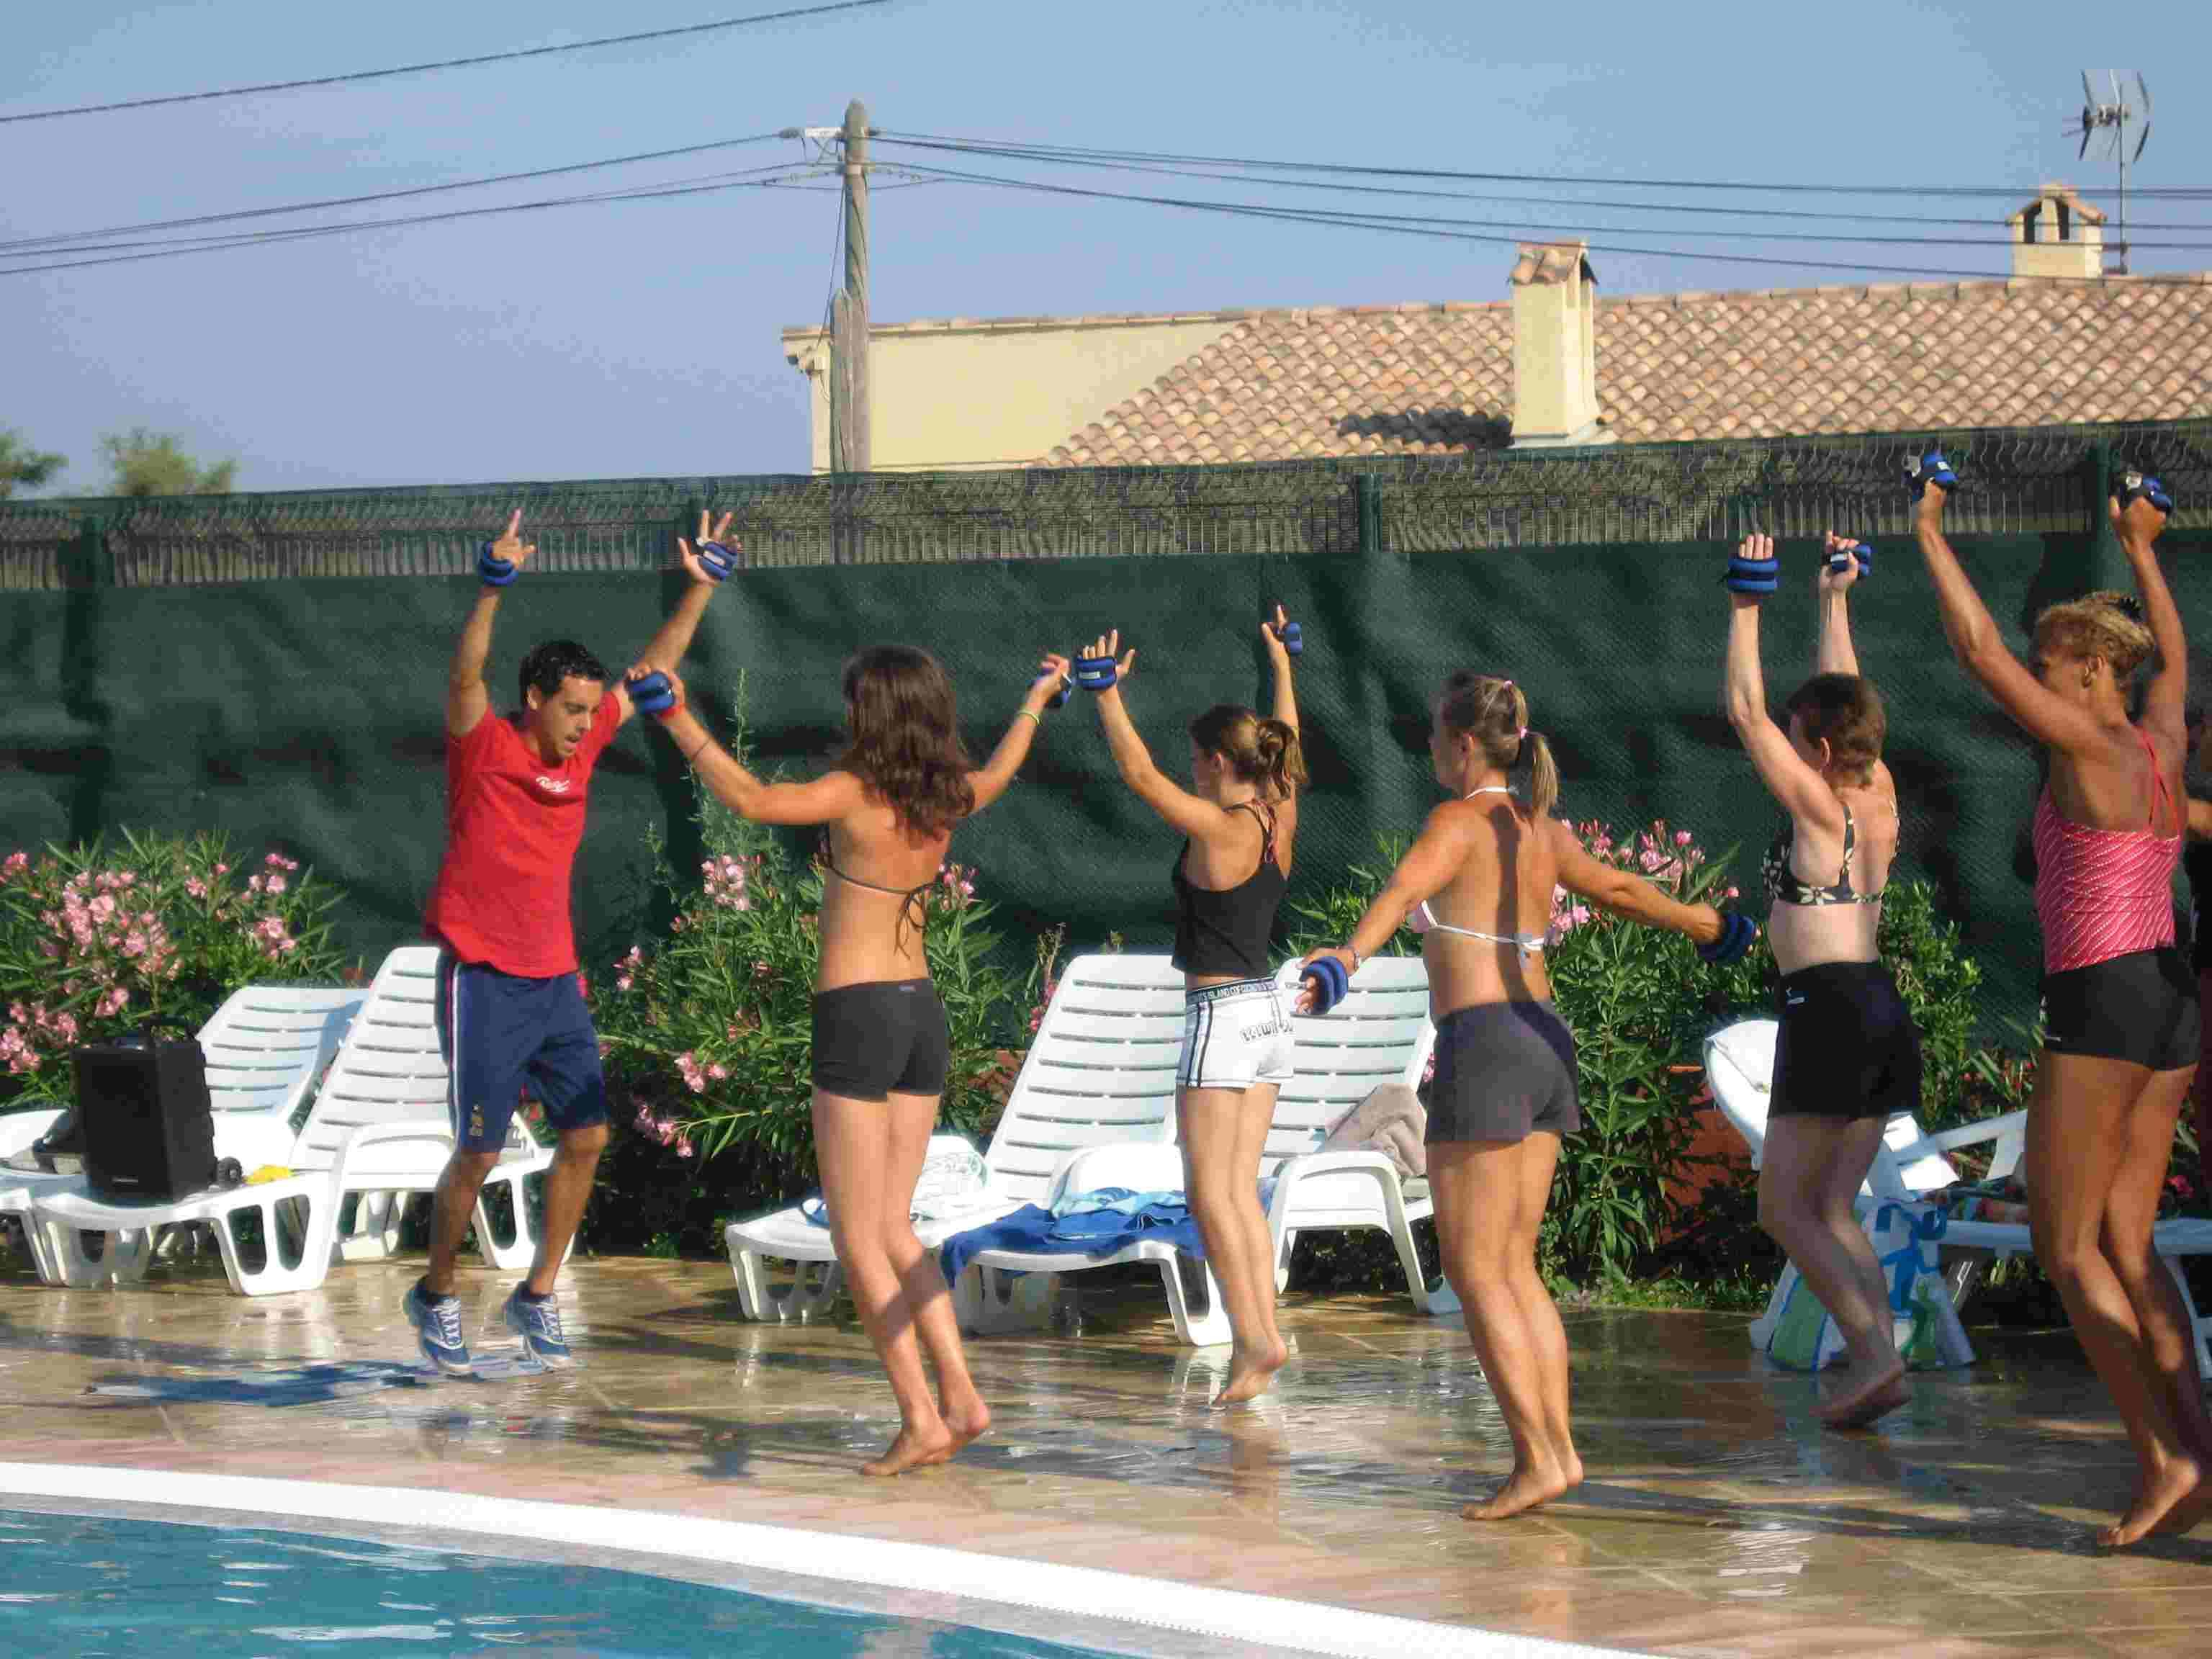 Entertainment organised Camping International - Hyères